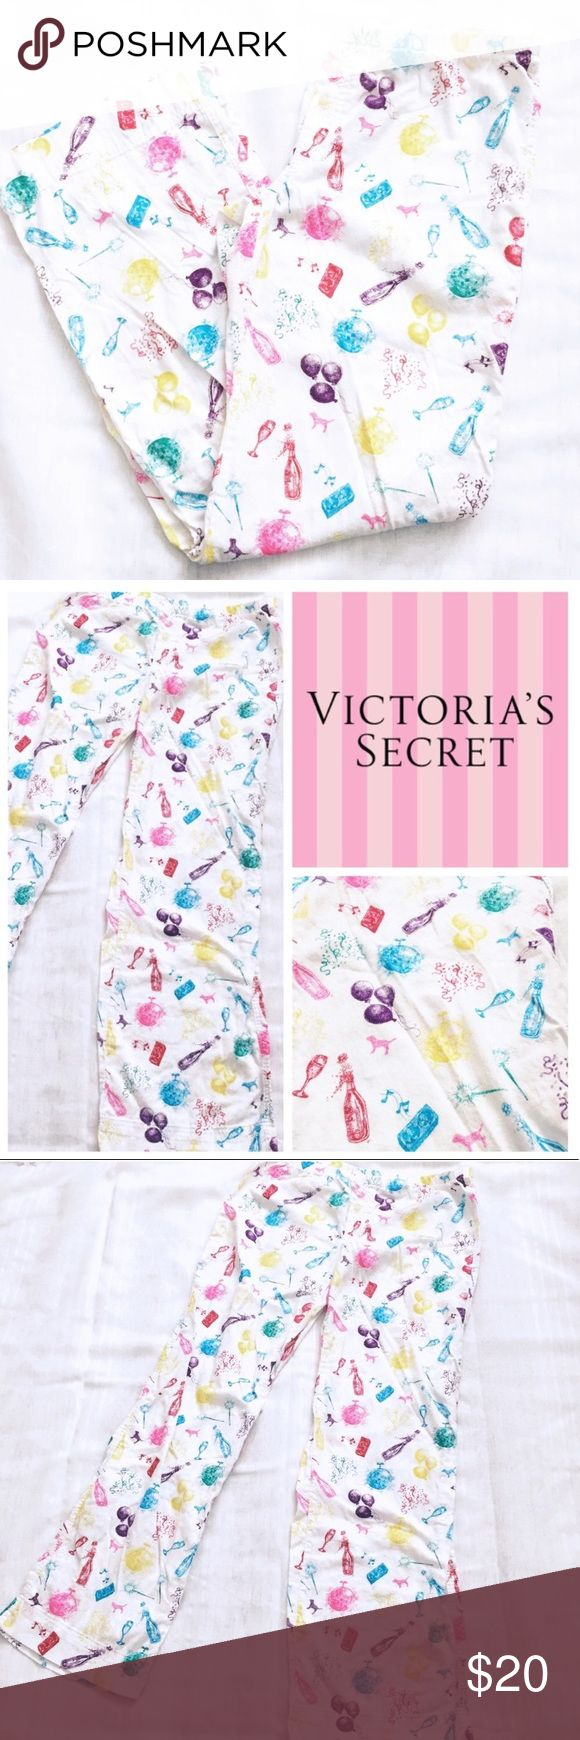 VS PINK Pajama Pants Sz S Victoria's Secret PINK pajama pants. Size small. White background with bright colored NYE festive images (balloons, champagne, sparklers, confetti). EUC. Full length pants. 100% cotton PINK Victoria's Secret Intimates & Sleepwear Pajamas